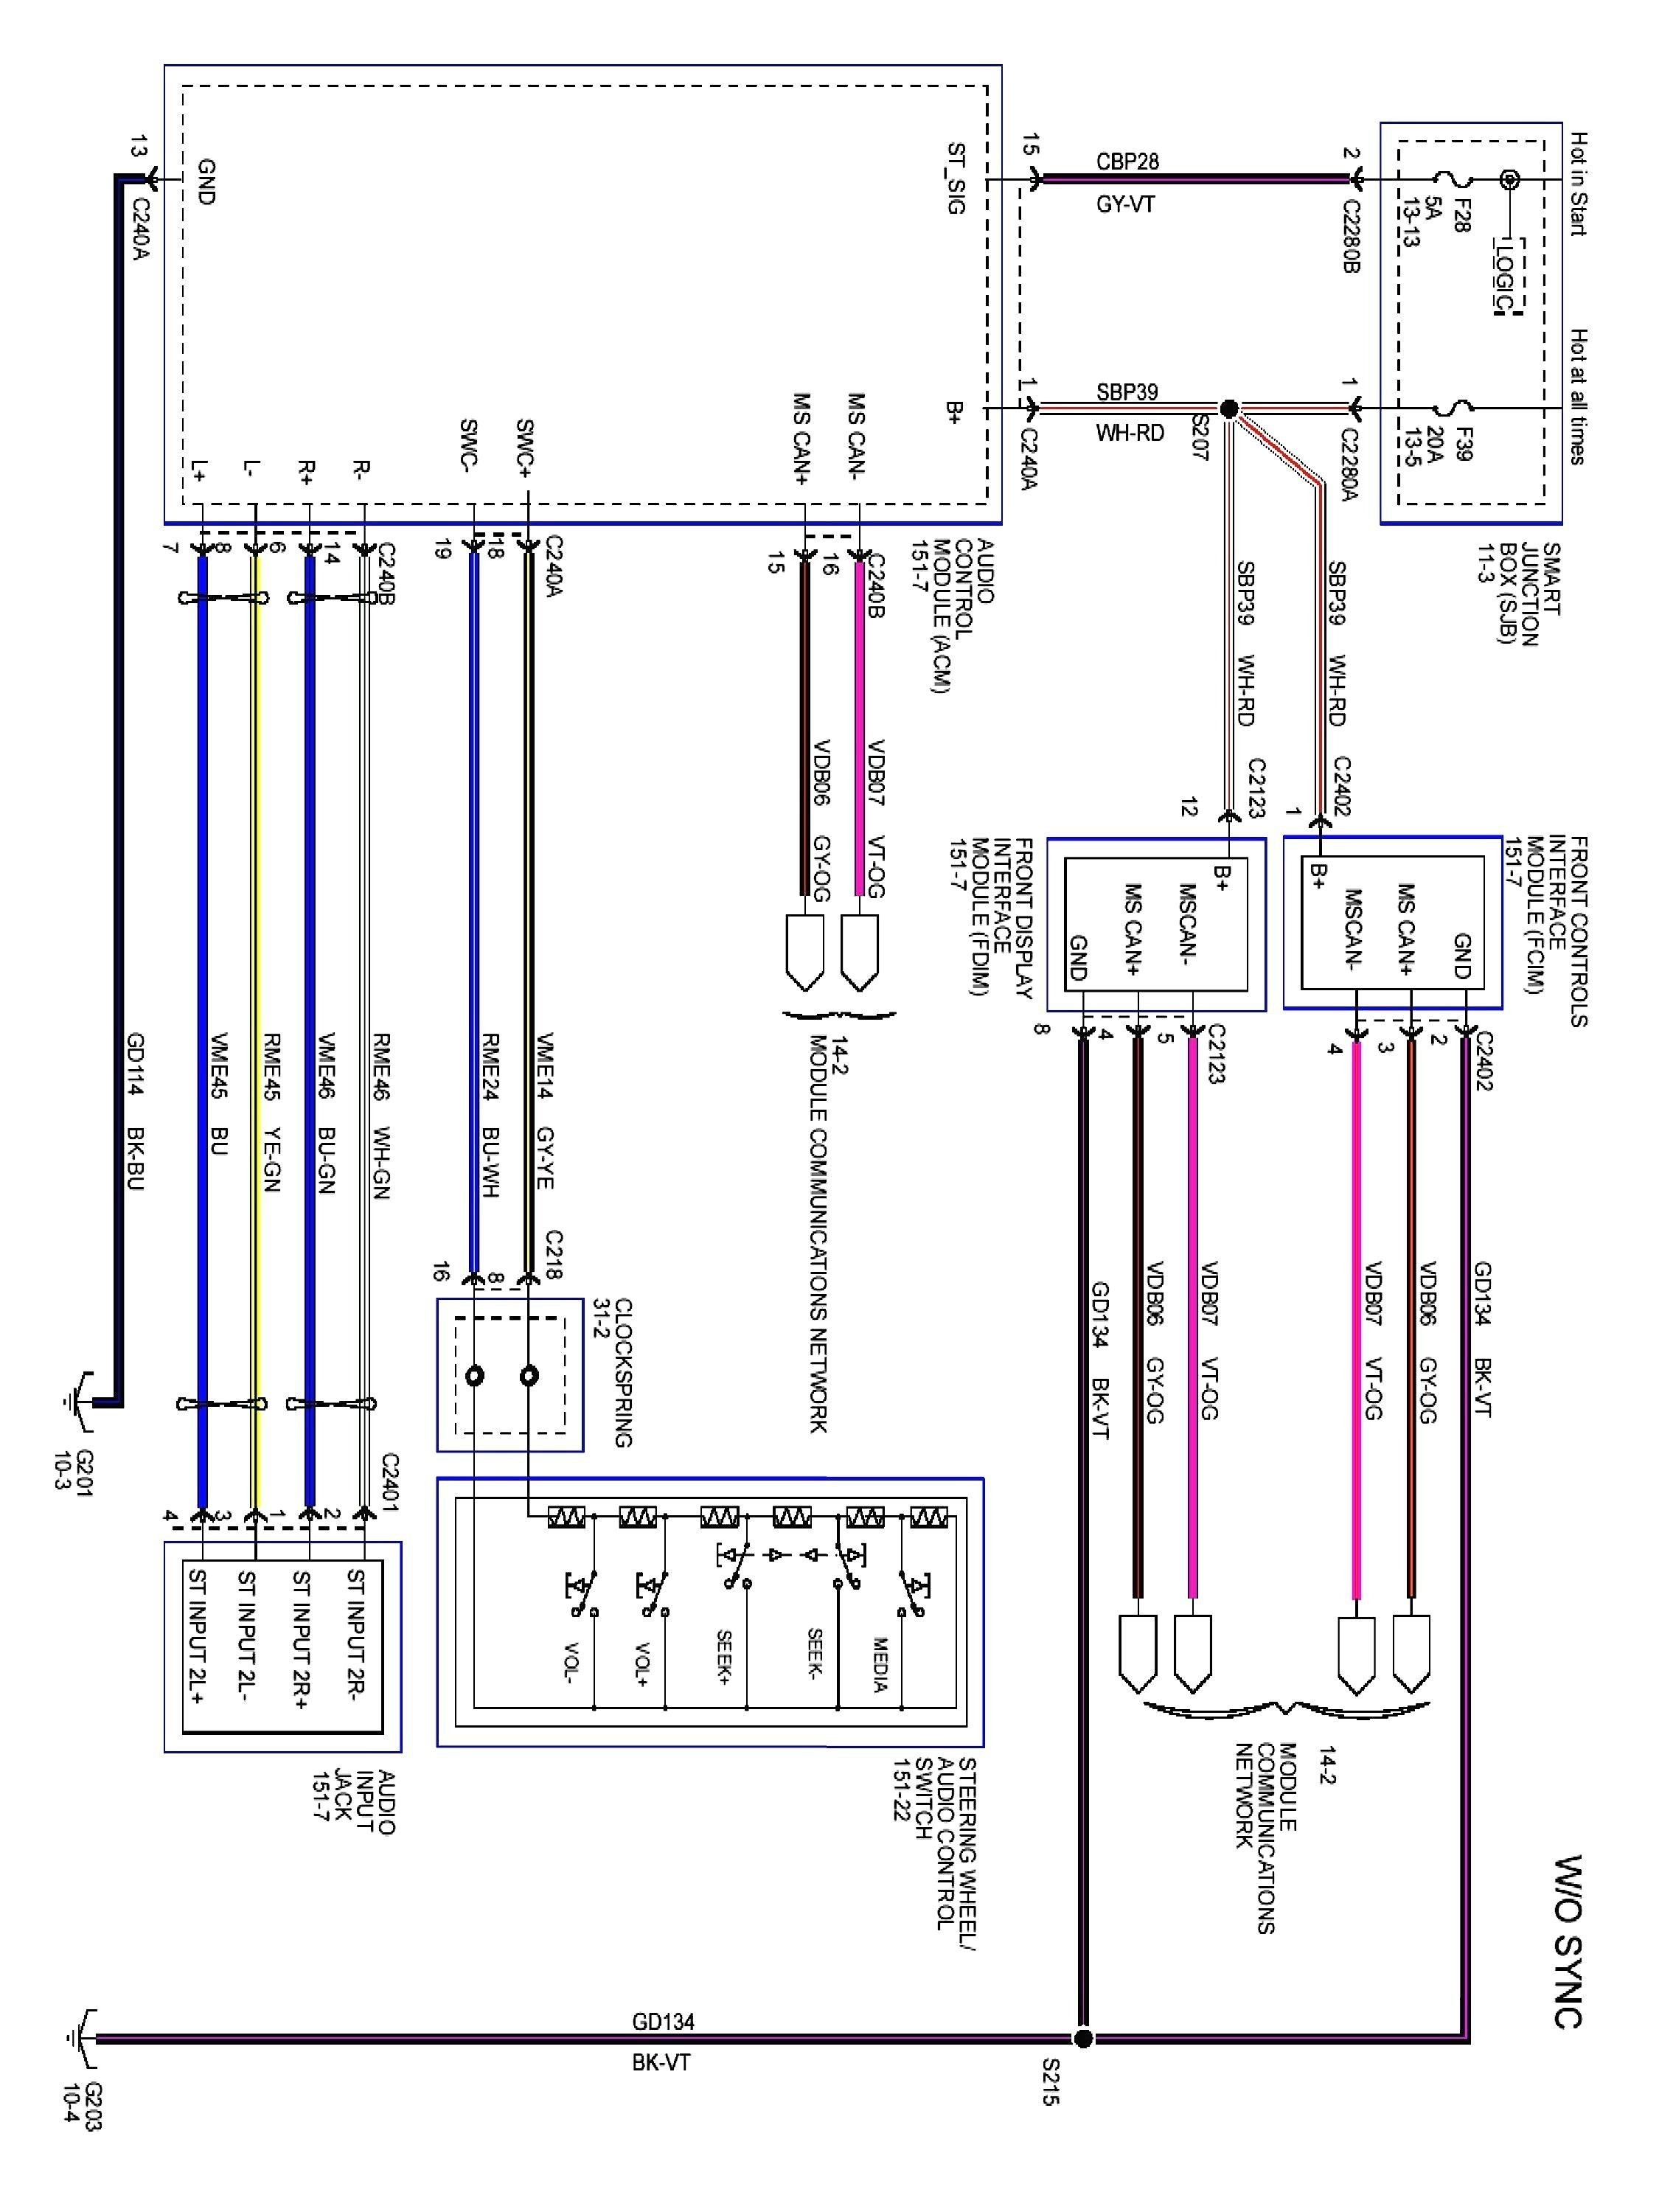 E46 Wiring Schematic - Gaucho Jeep Wiring Diagram -  fords8n.furnaces.jeanjaures37.fr | Bmw E46 Wiring Diagrams |  | Wiring Diagram Resource